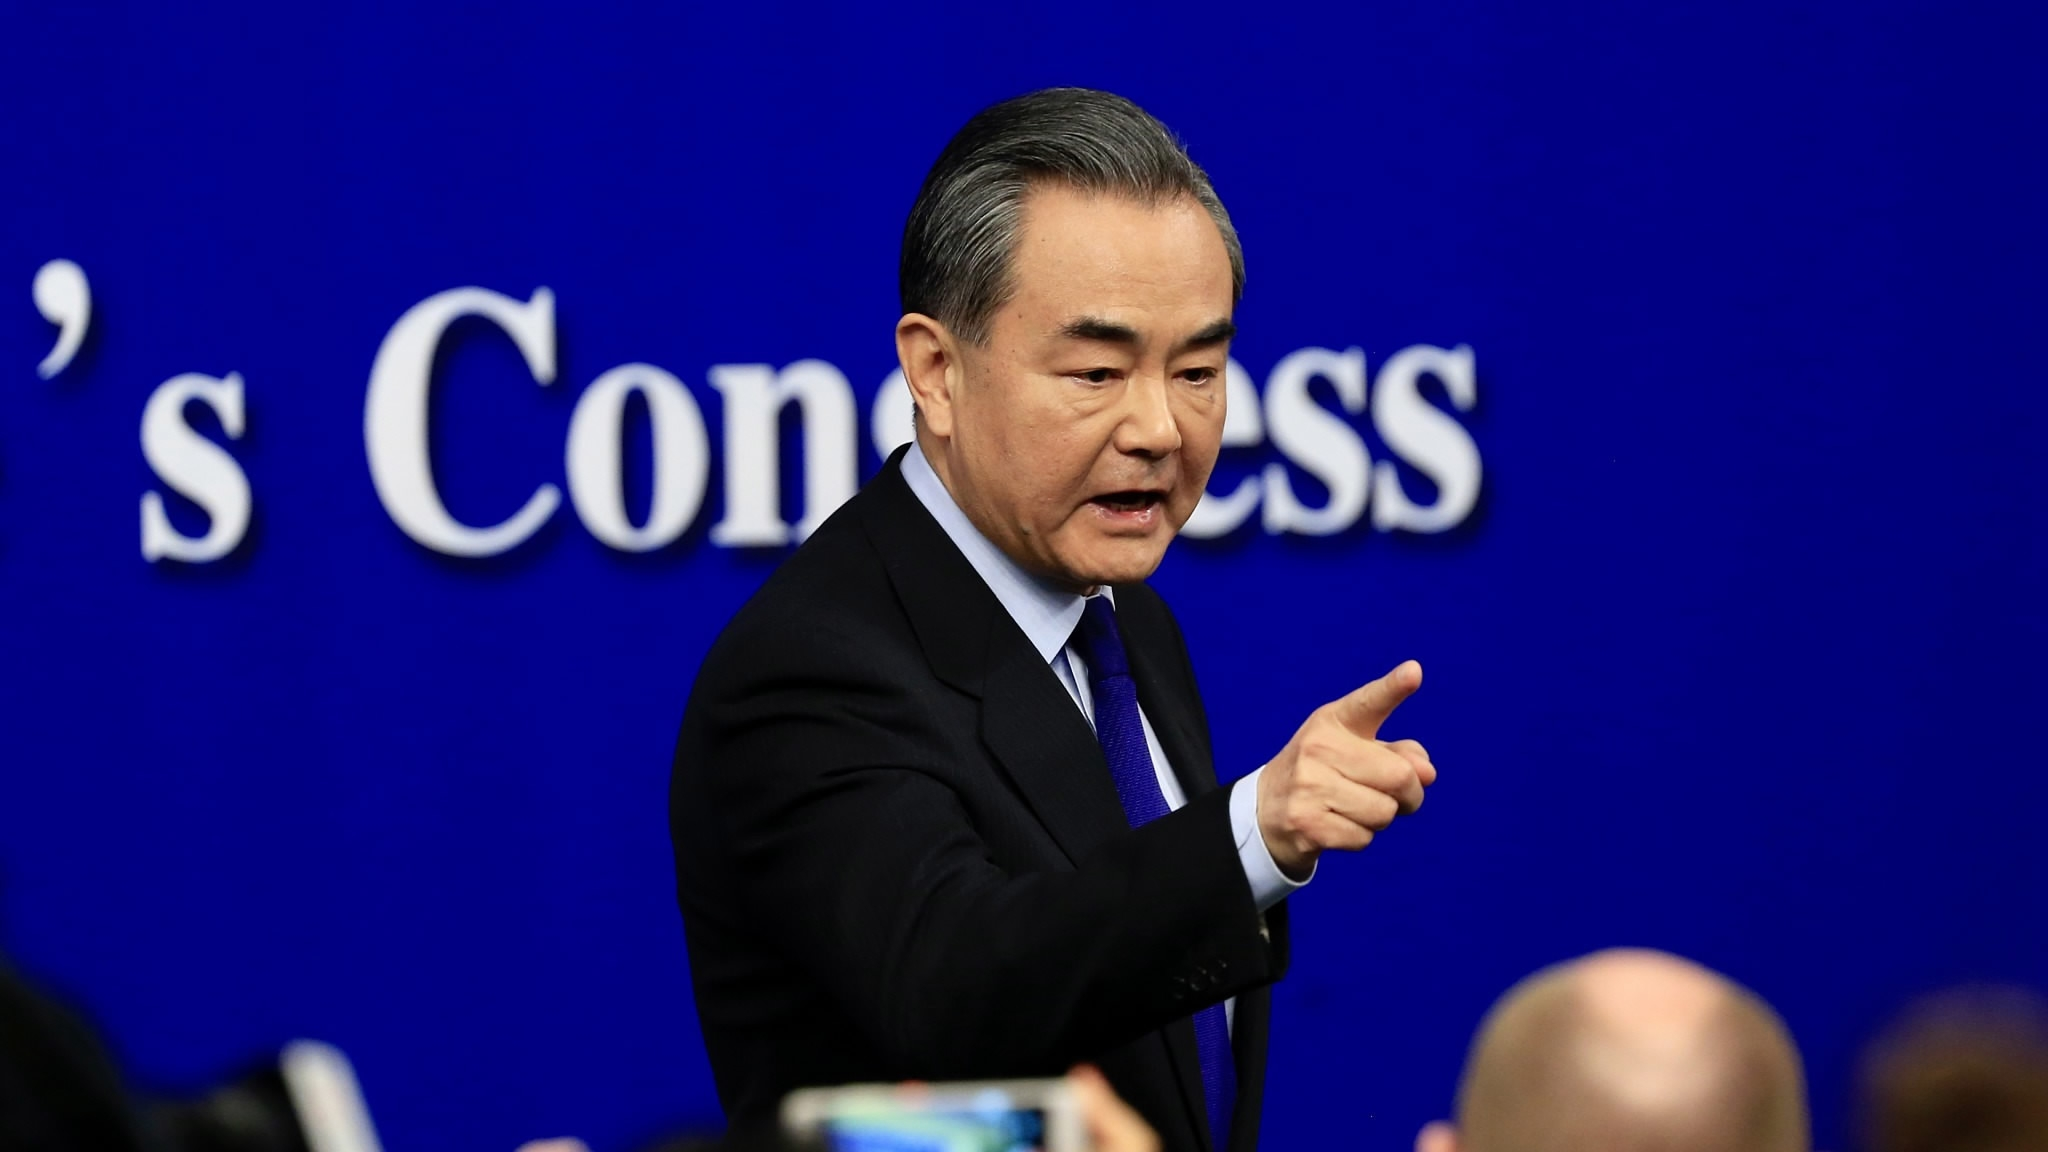 Highlights: Chinese FM briefs media on foreign policy, foreign relations